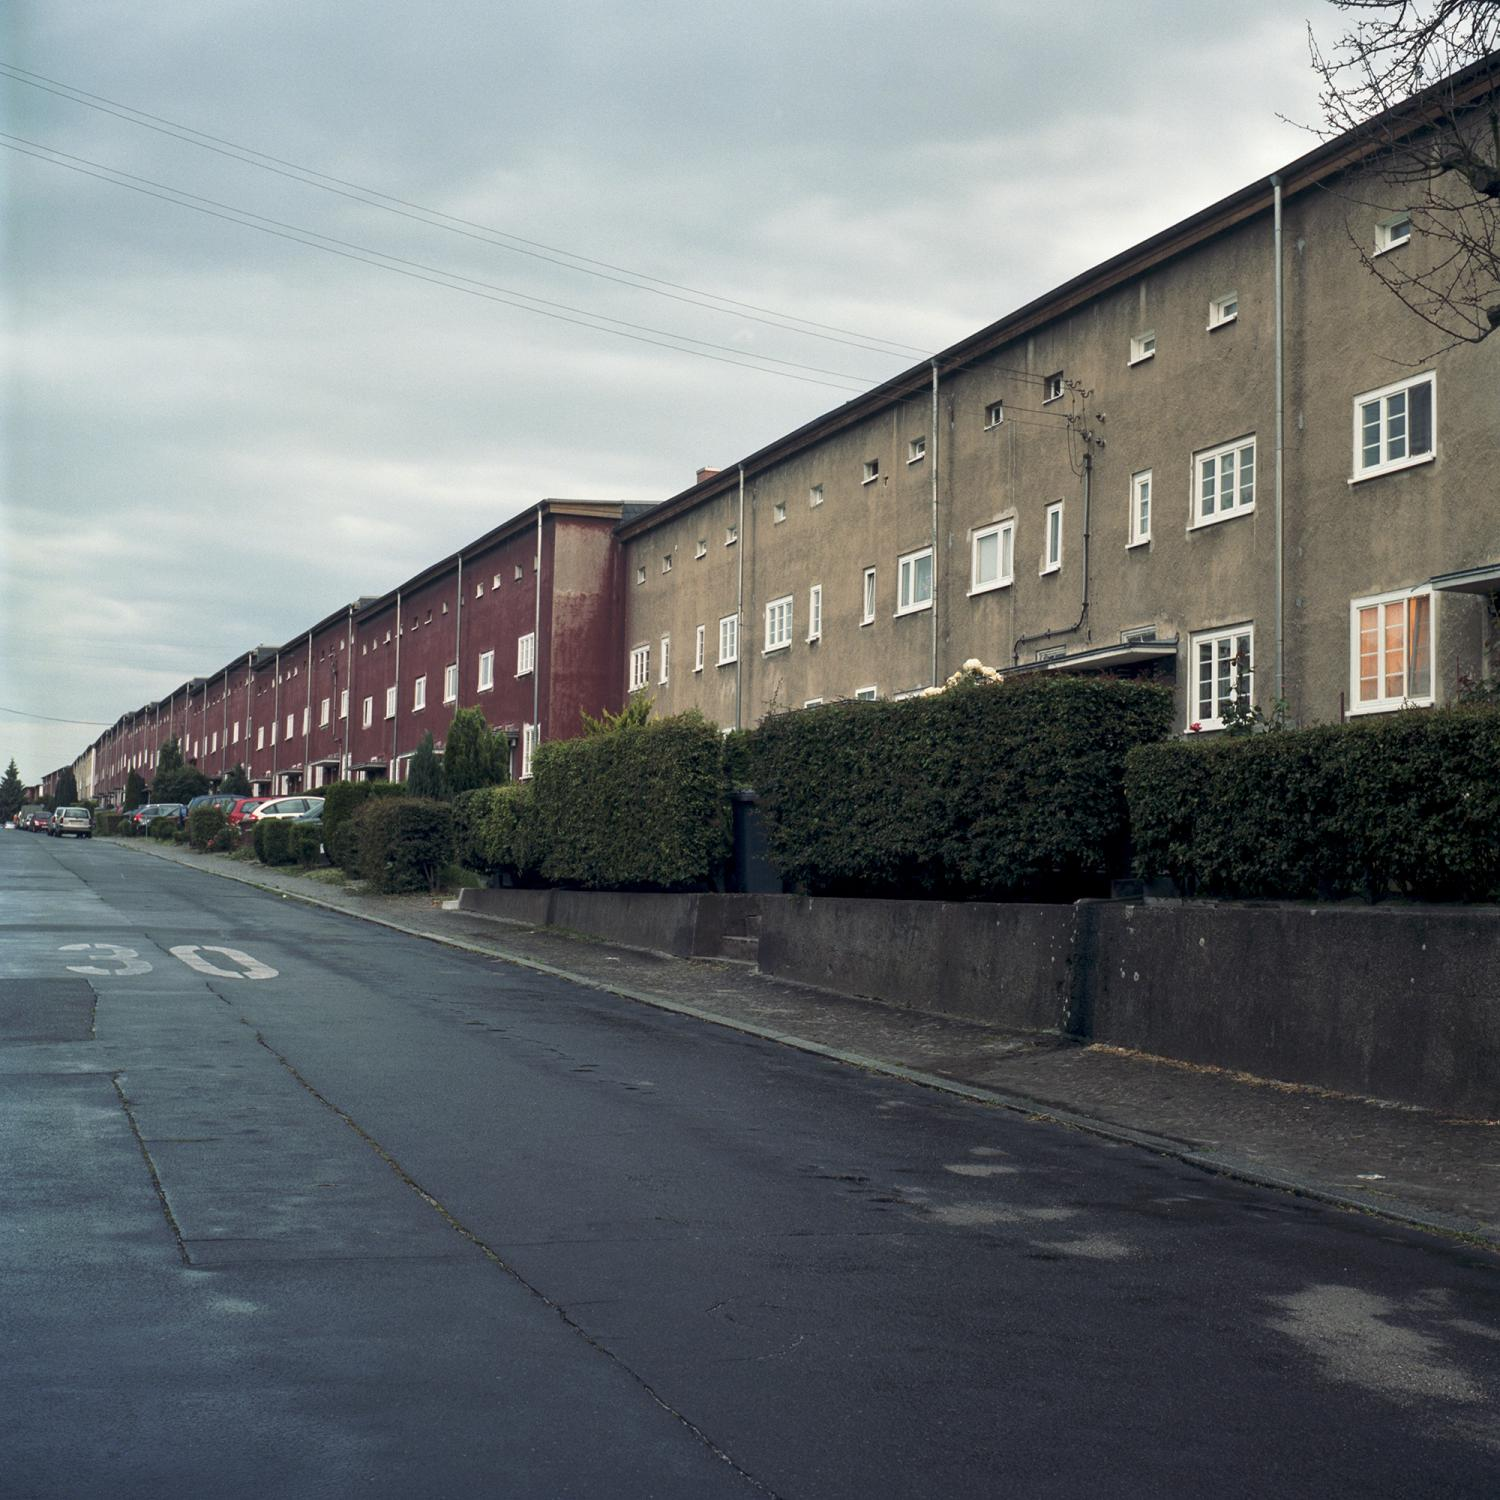 A street at dusk is pictured in the residential area Reform, near Sudenburg district, where the old stadium Heinrich-Germer-Stadion and Thälmannwerk are located, in Magdeburg.